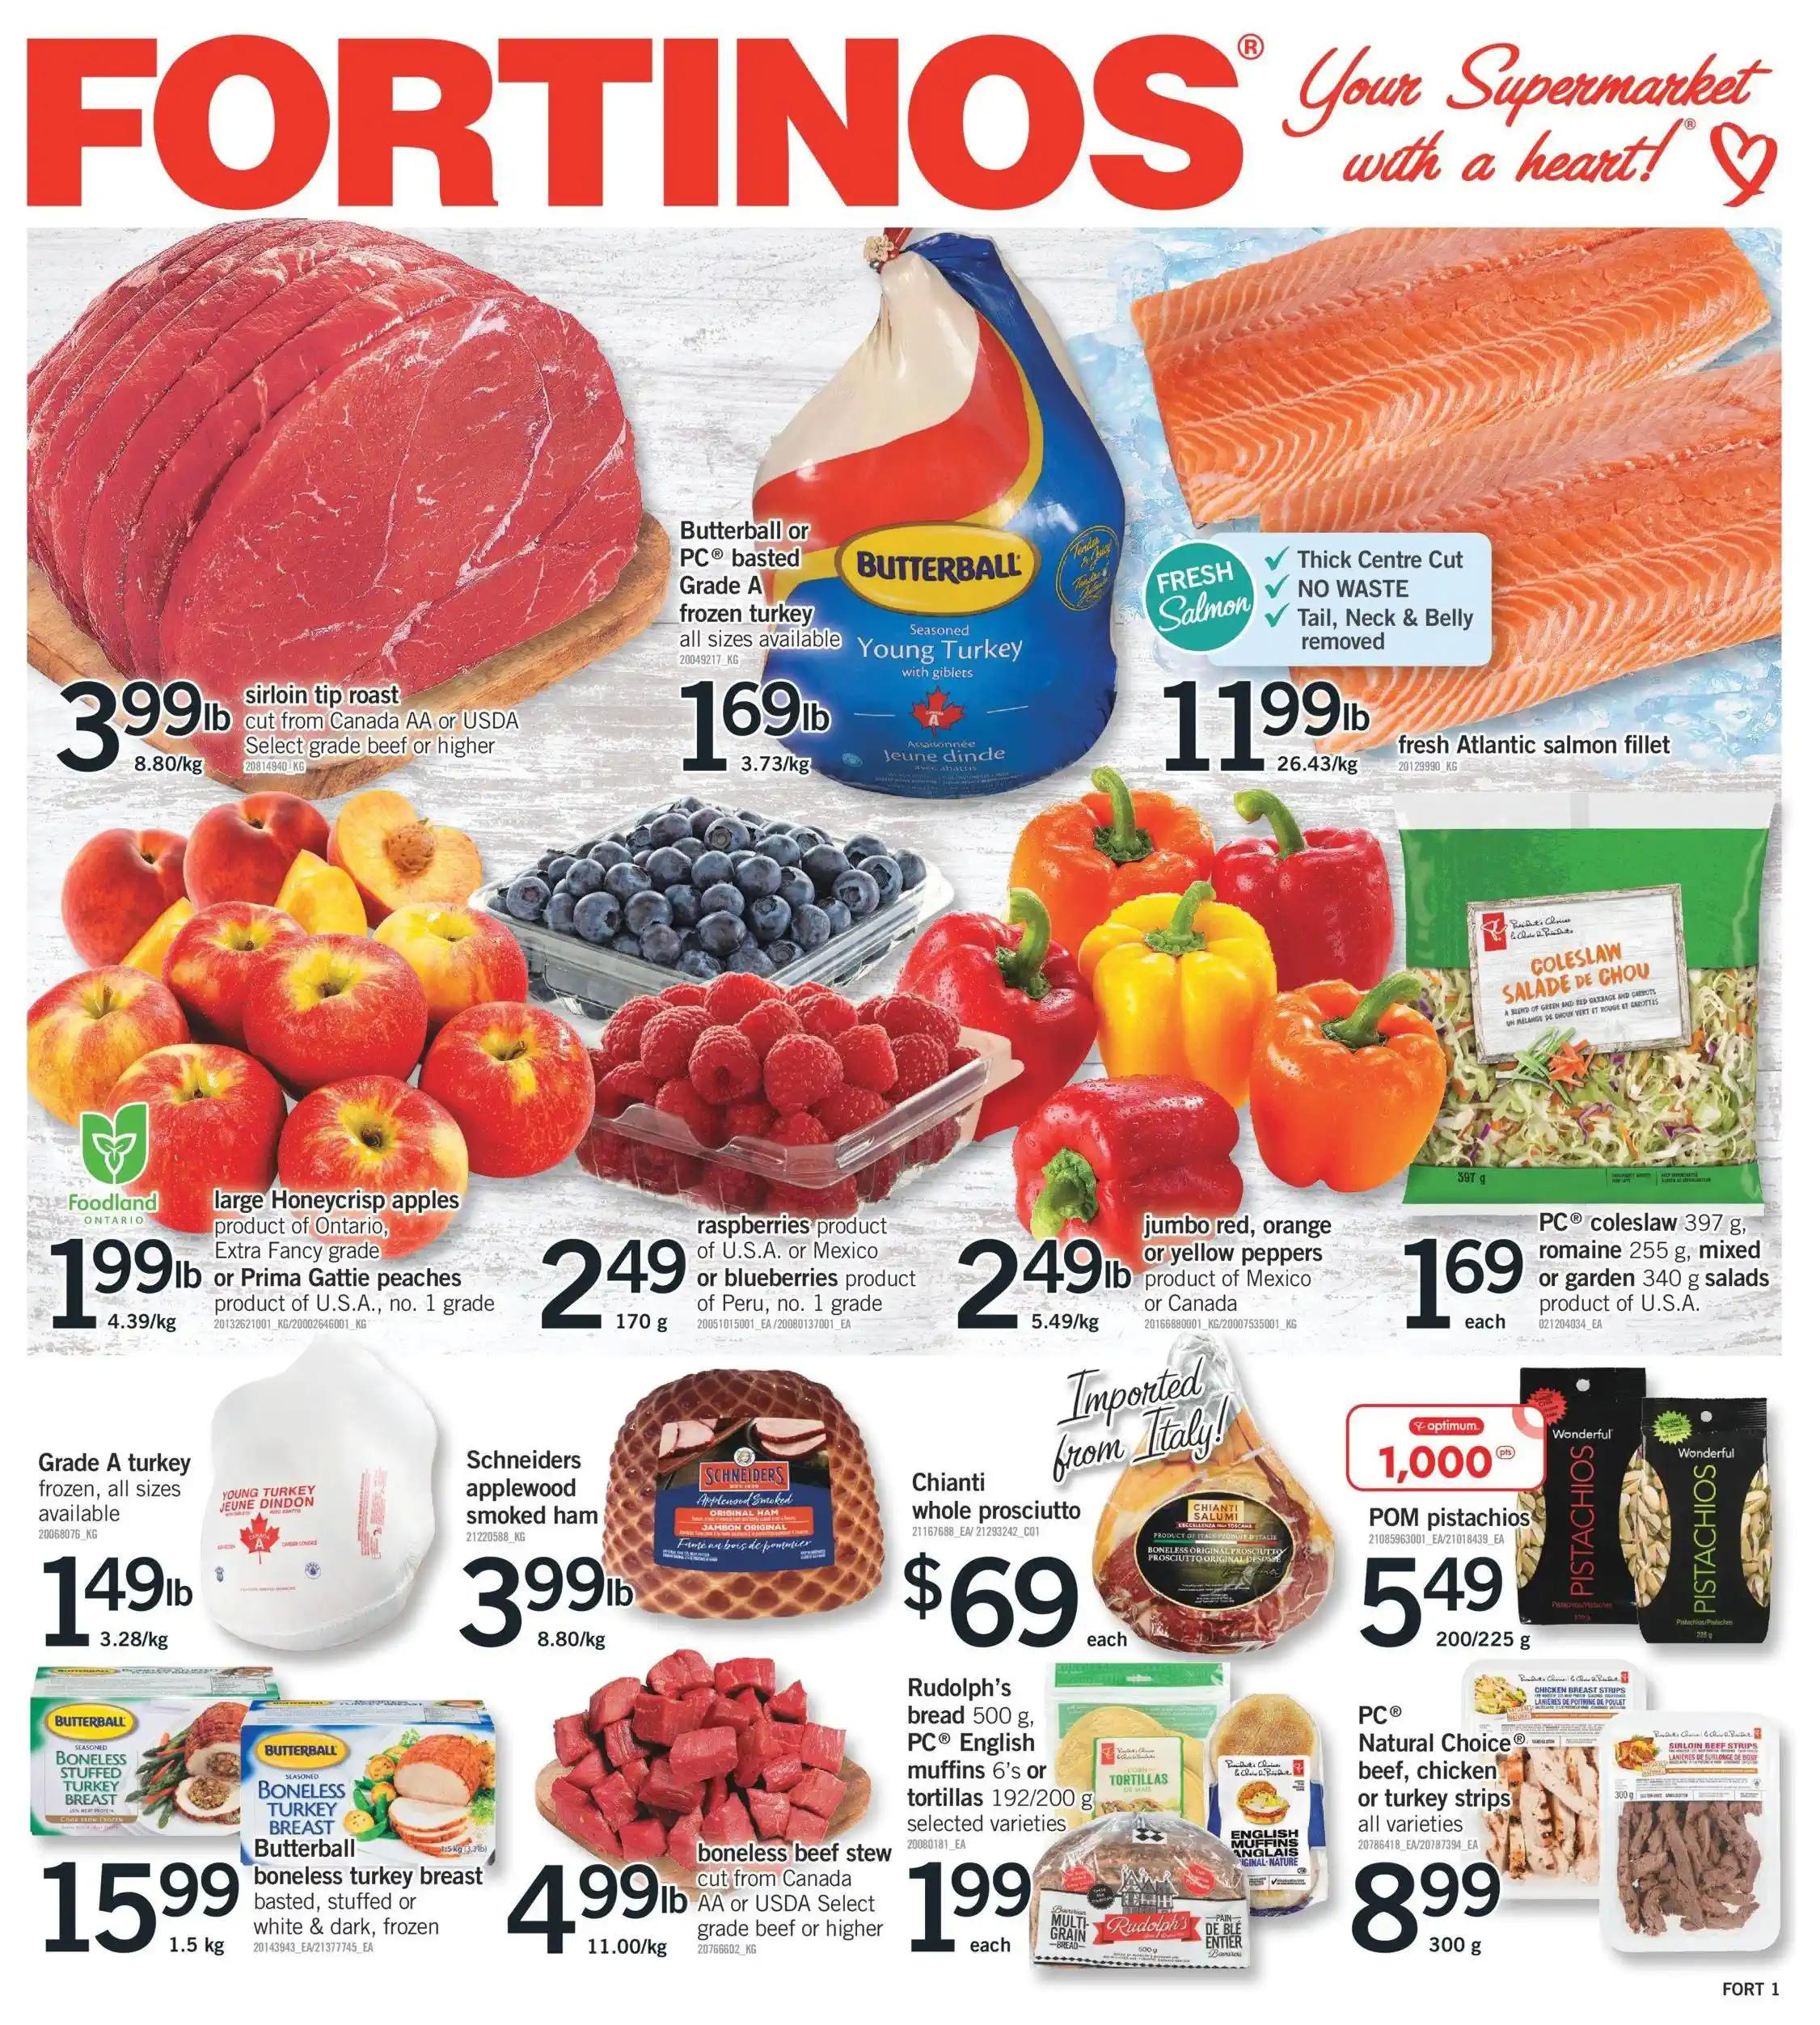 Fortinos - Weekly Flyer Specials